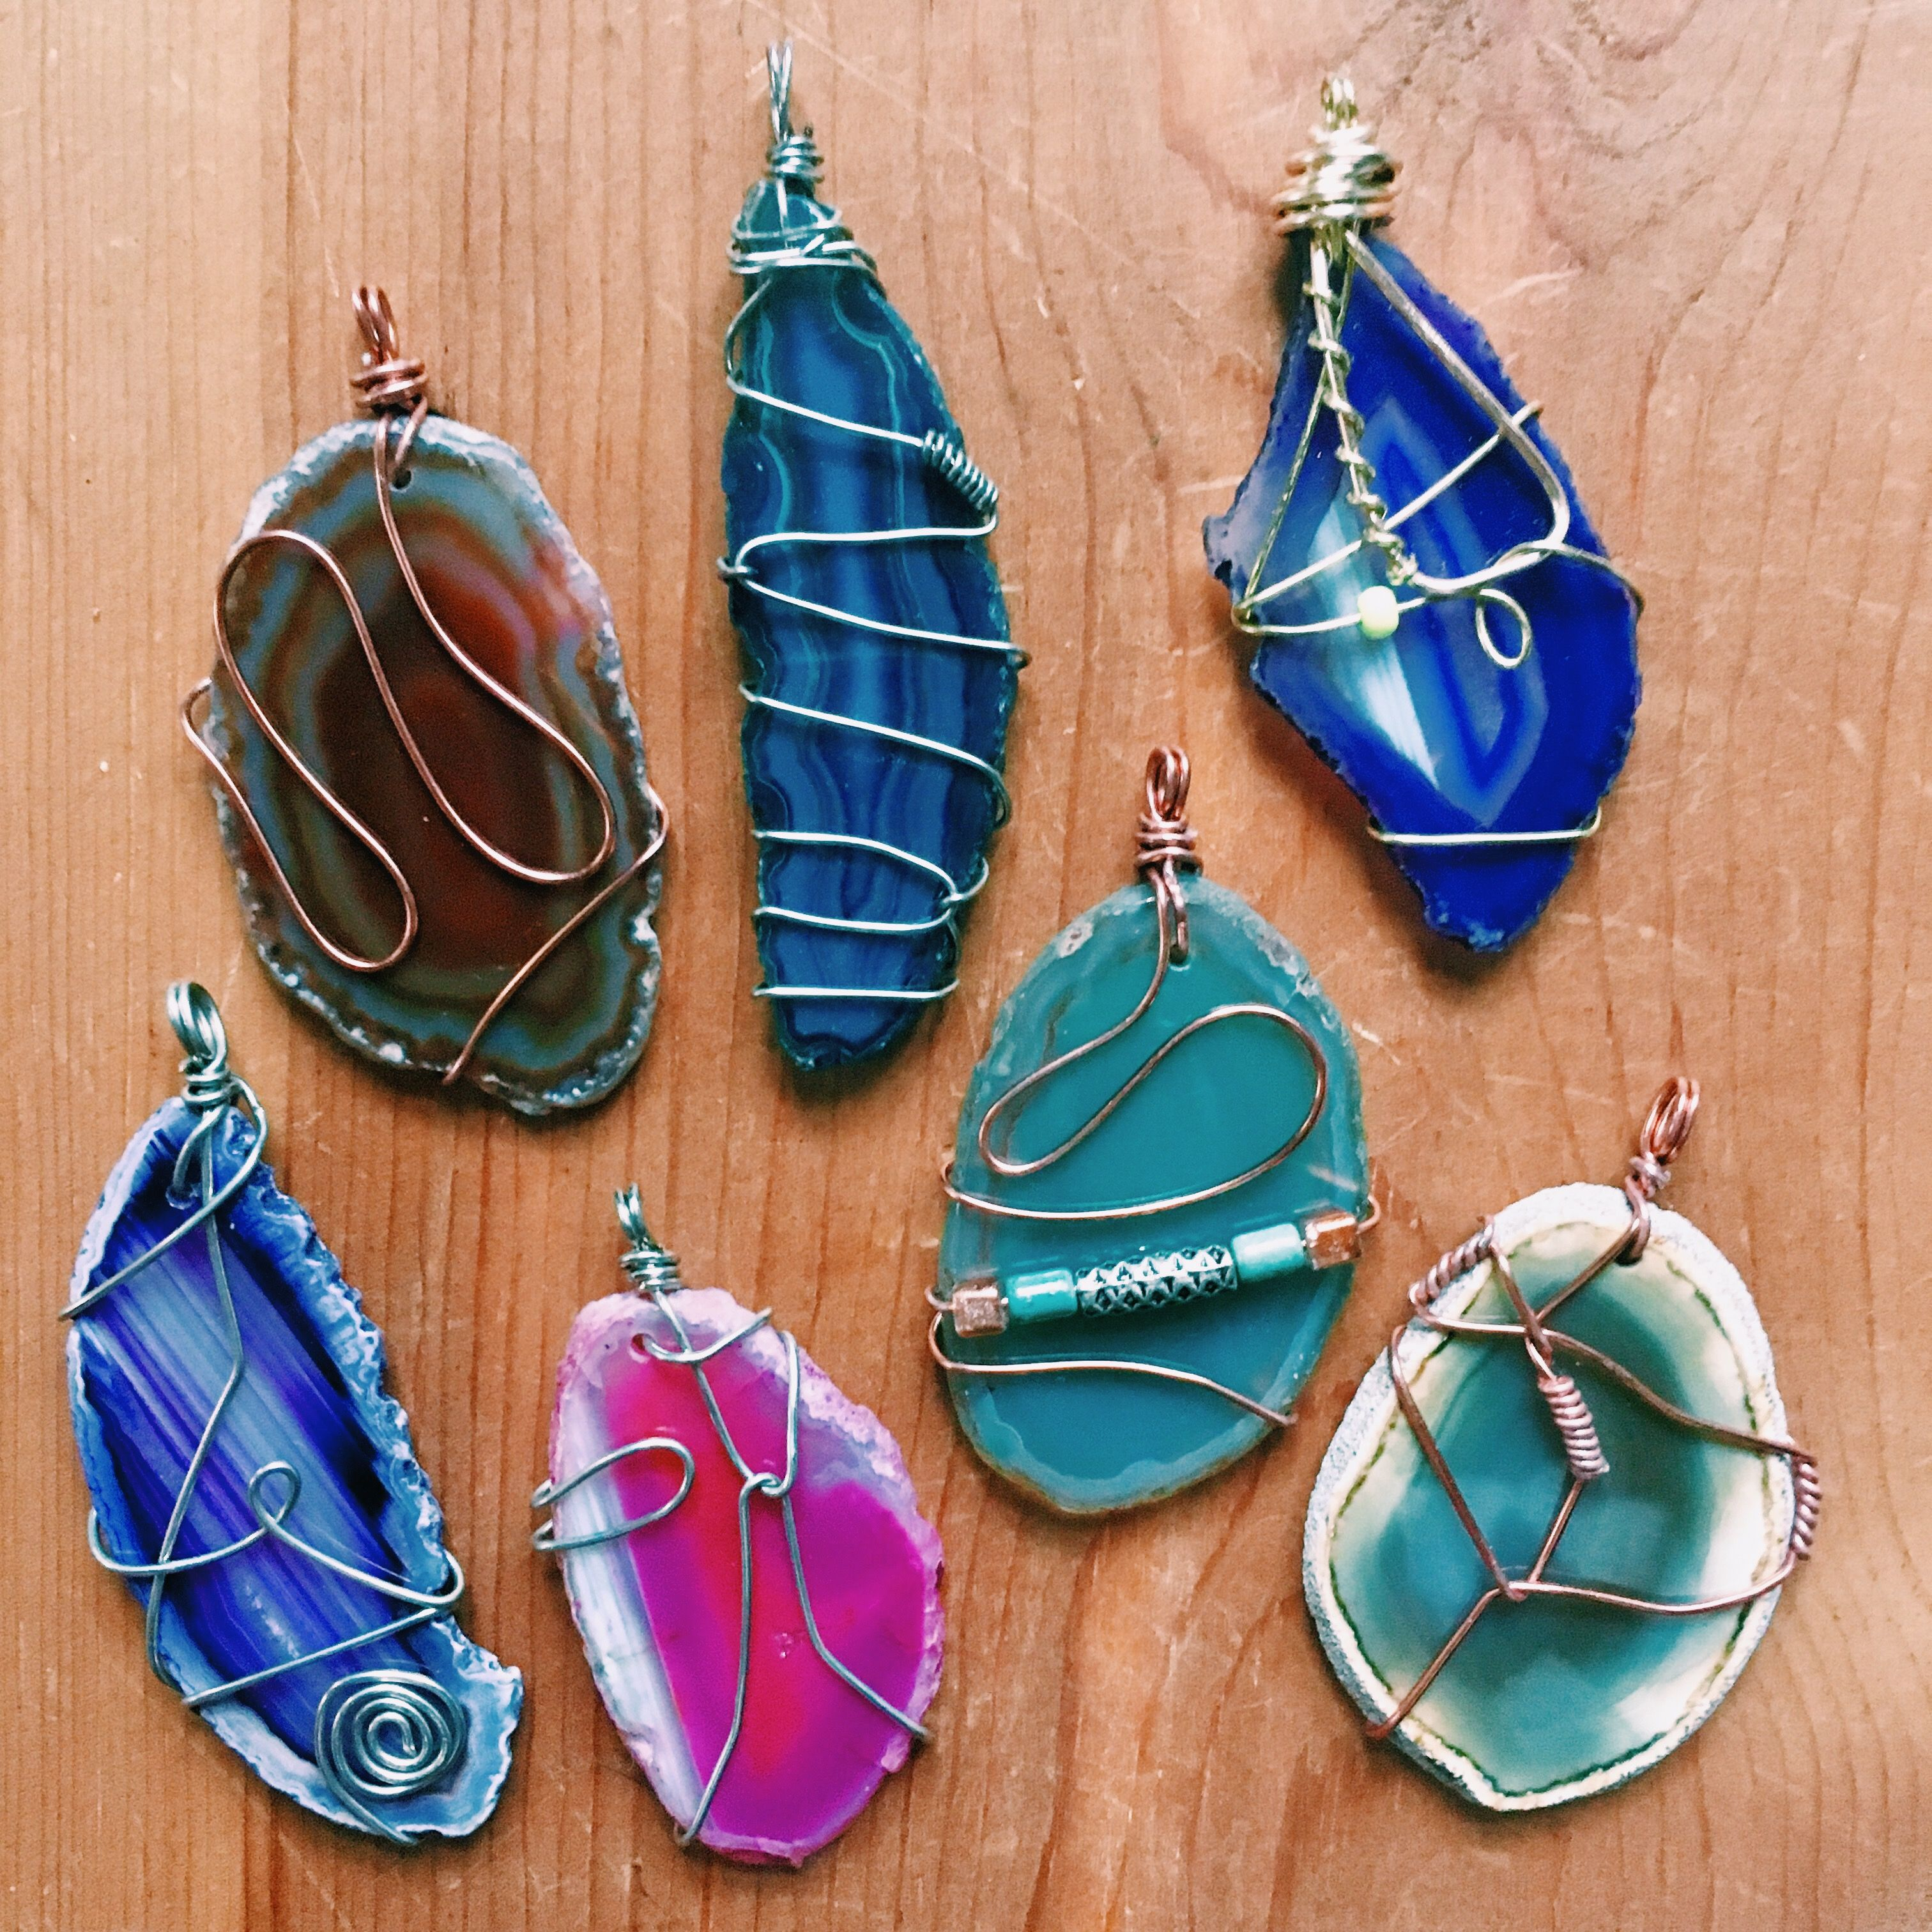 Agate Slice Pendant Necklace  Wire-wrapped Boho Style Necklace  Crystal Pendant